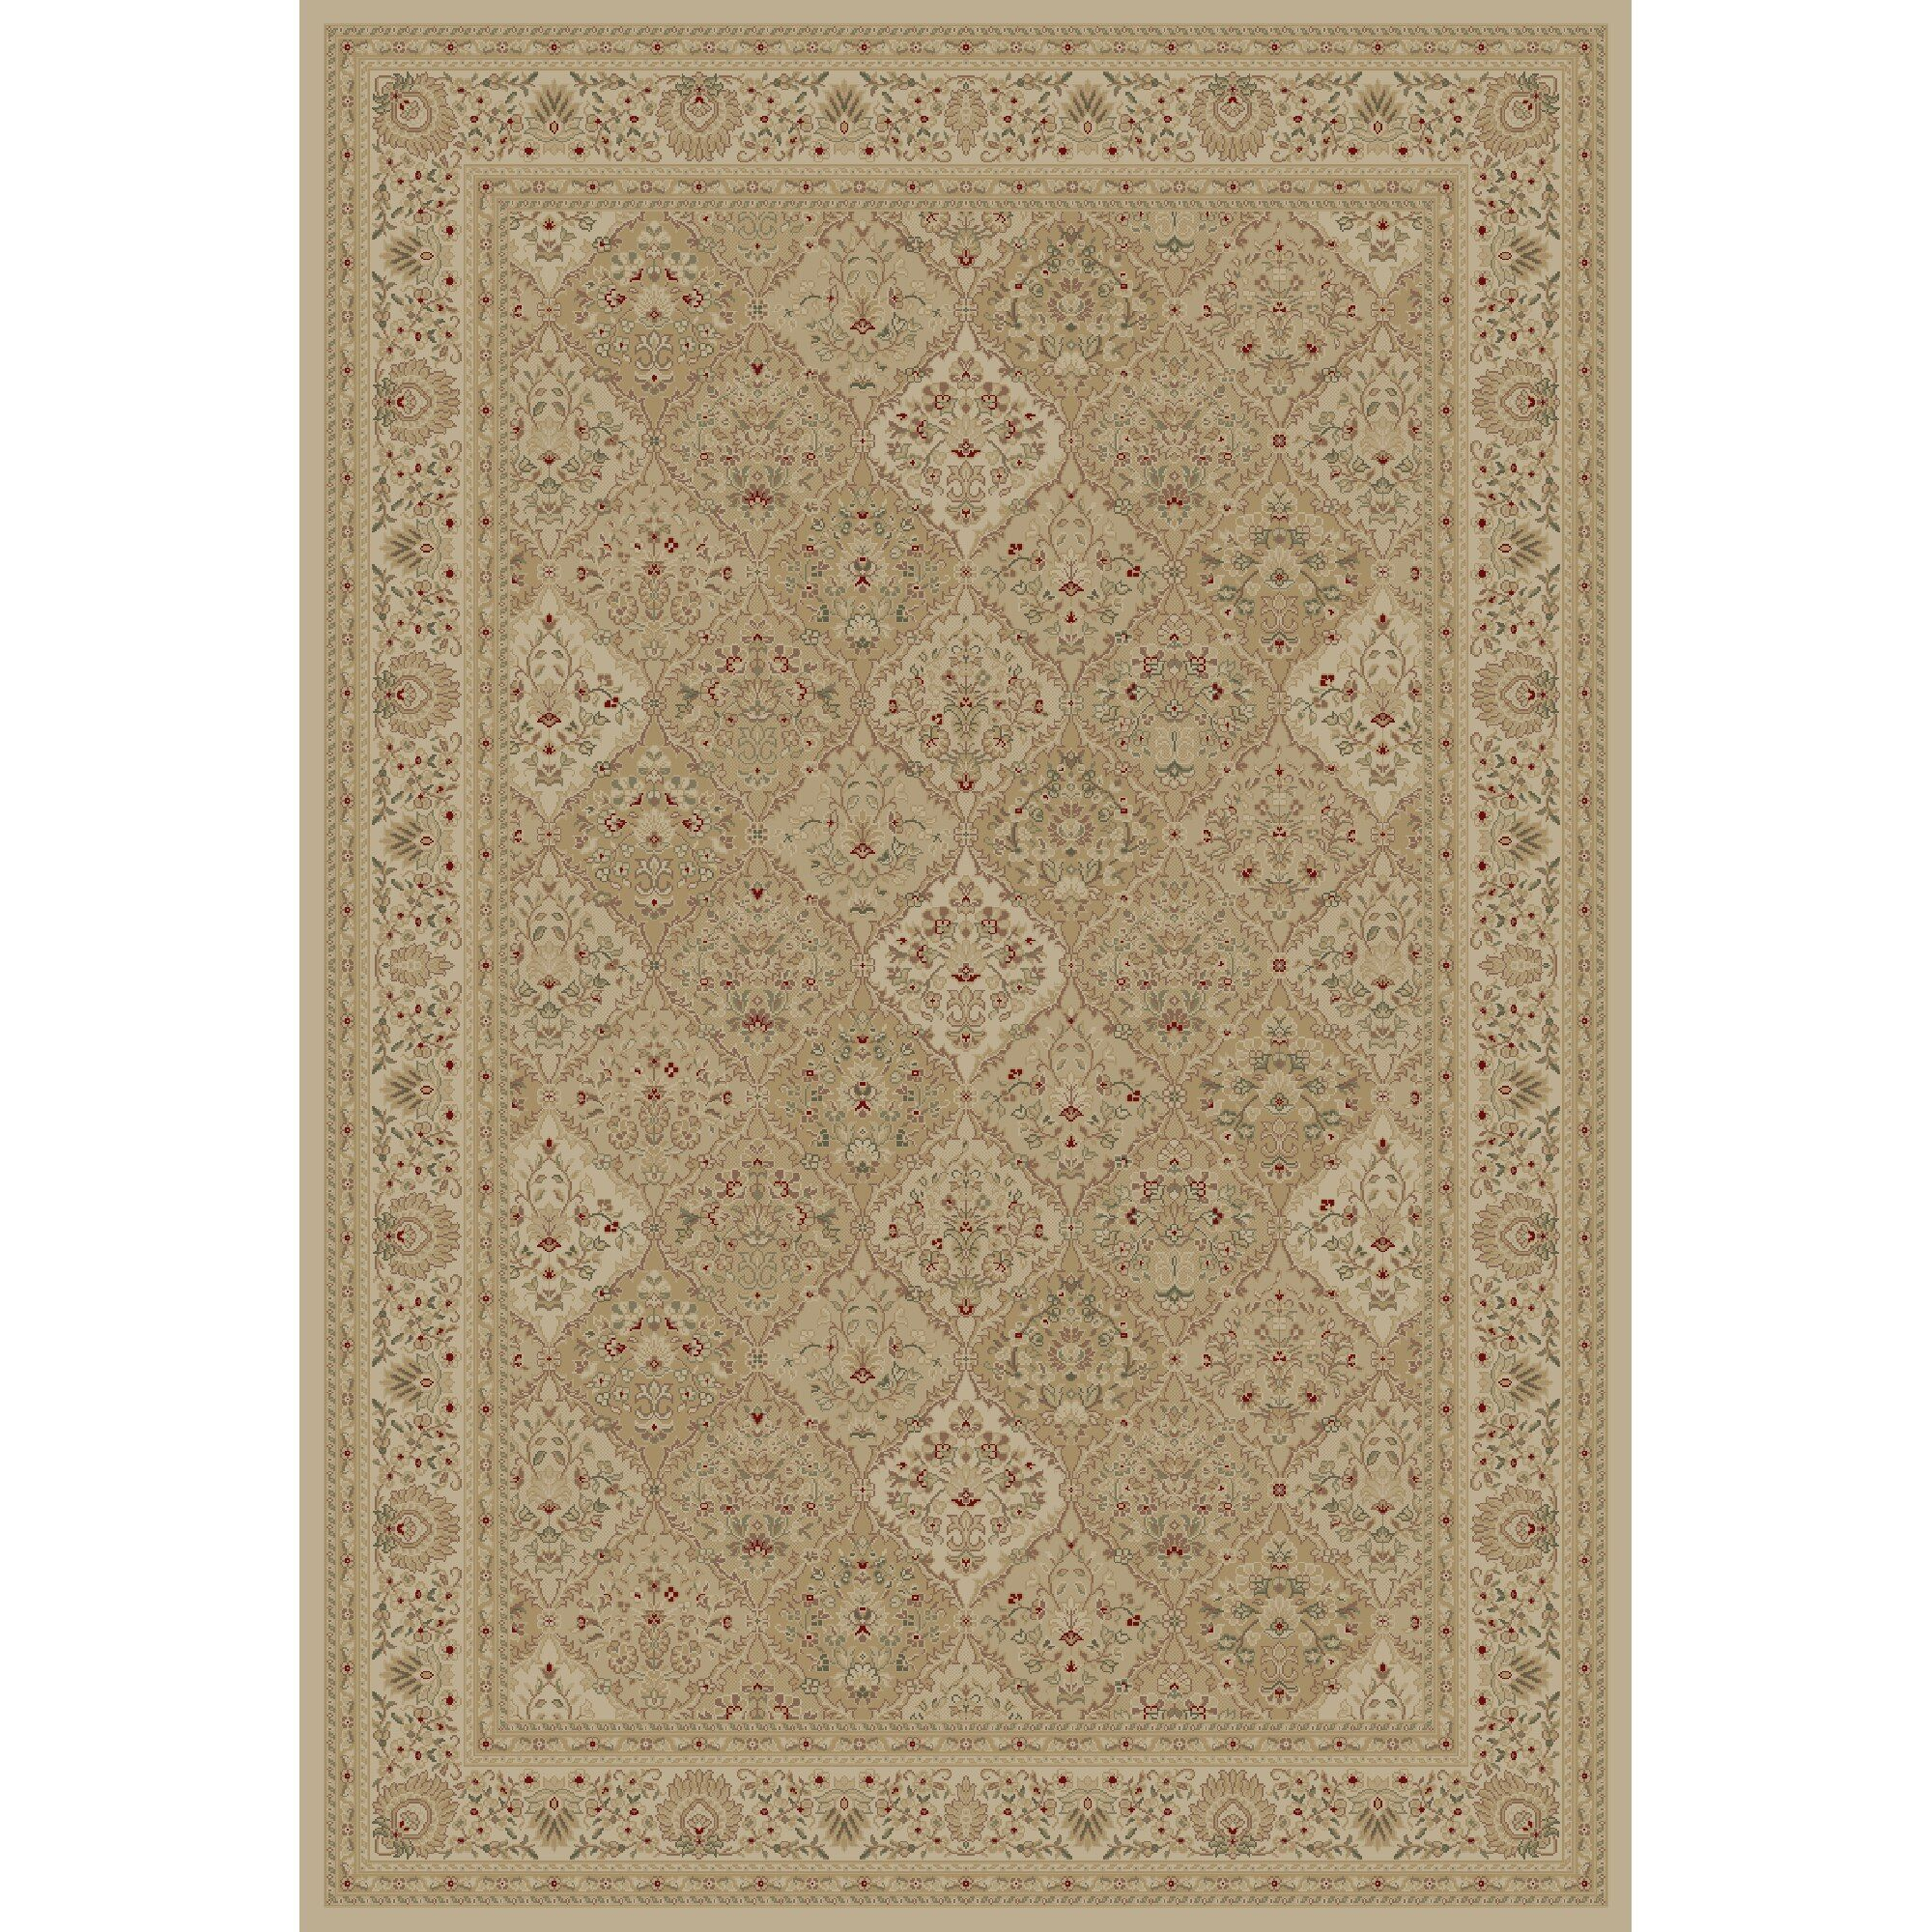 Mantra Ivory Oriental Rectangular Rug Rug Size: Rectangle 6'7